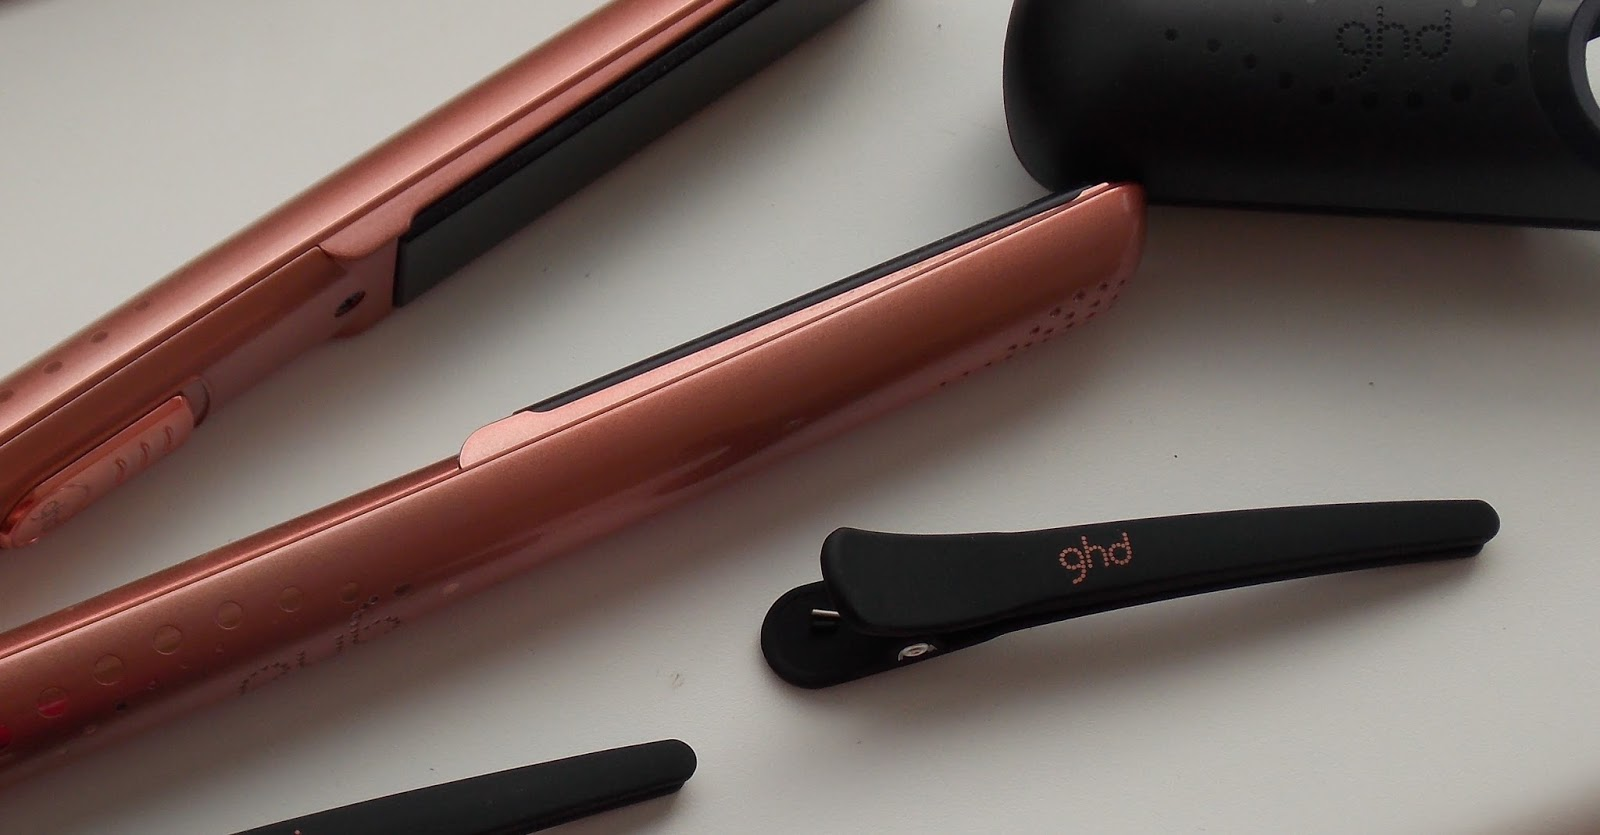 Review GHD Rose Gold Limited Edition Hair Straighteners